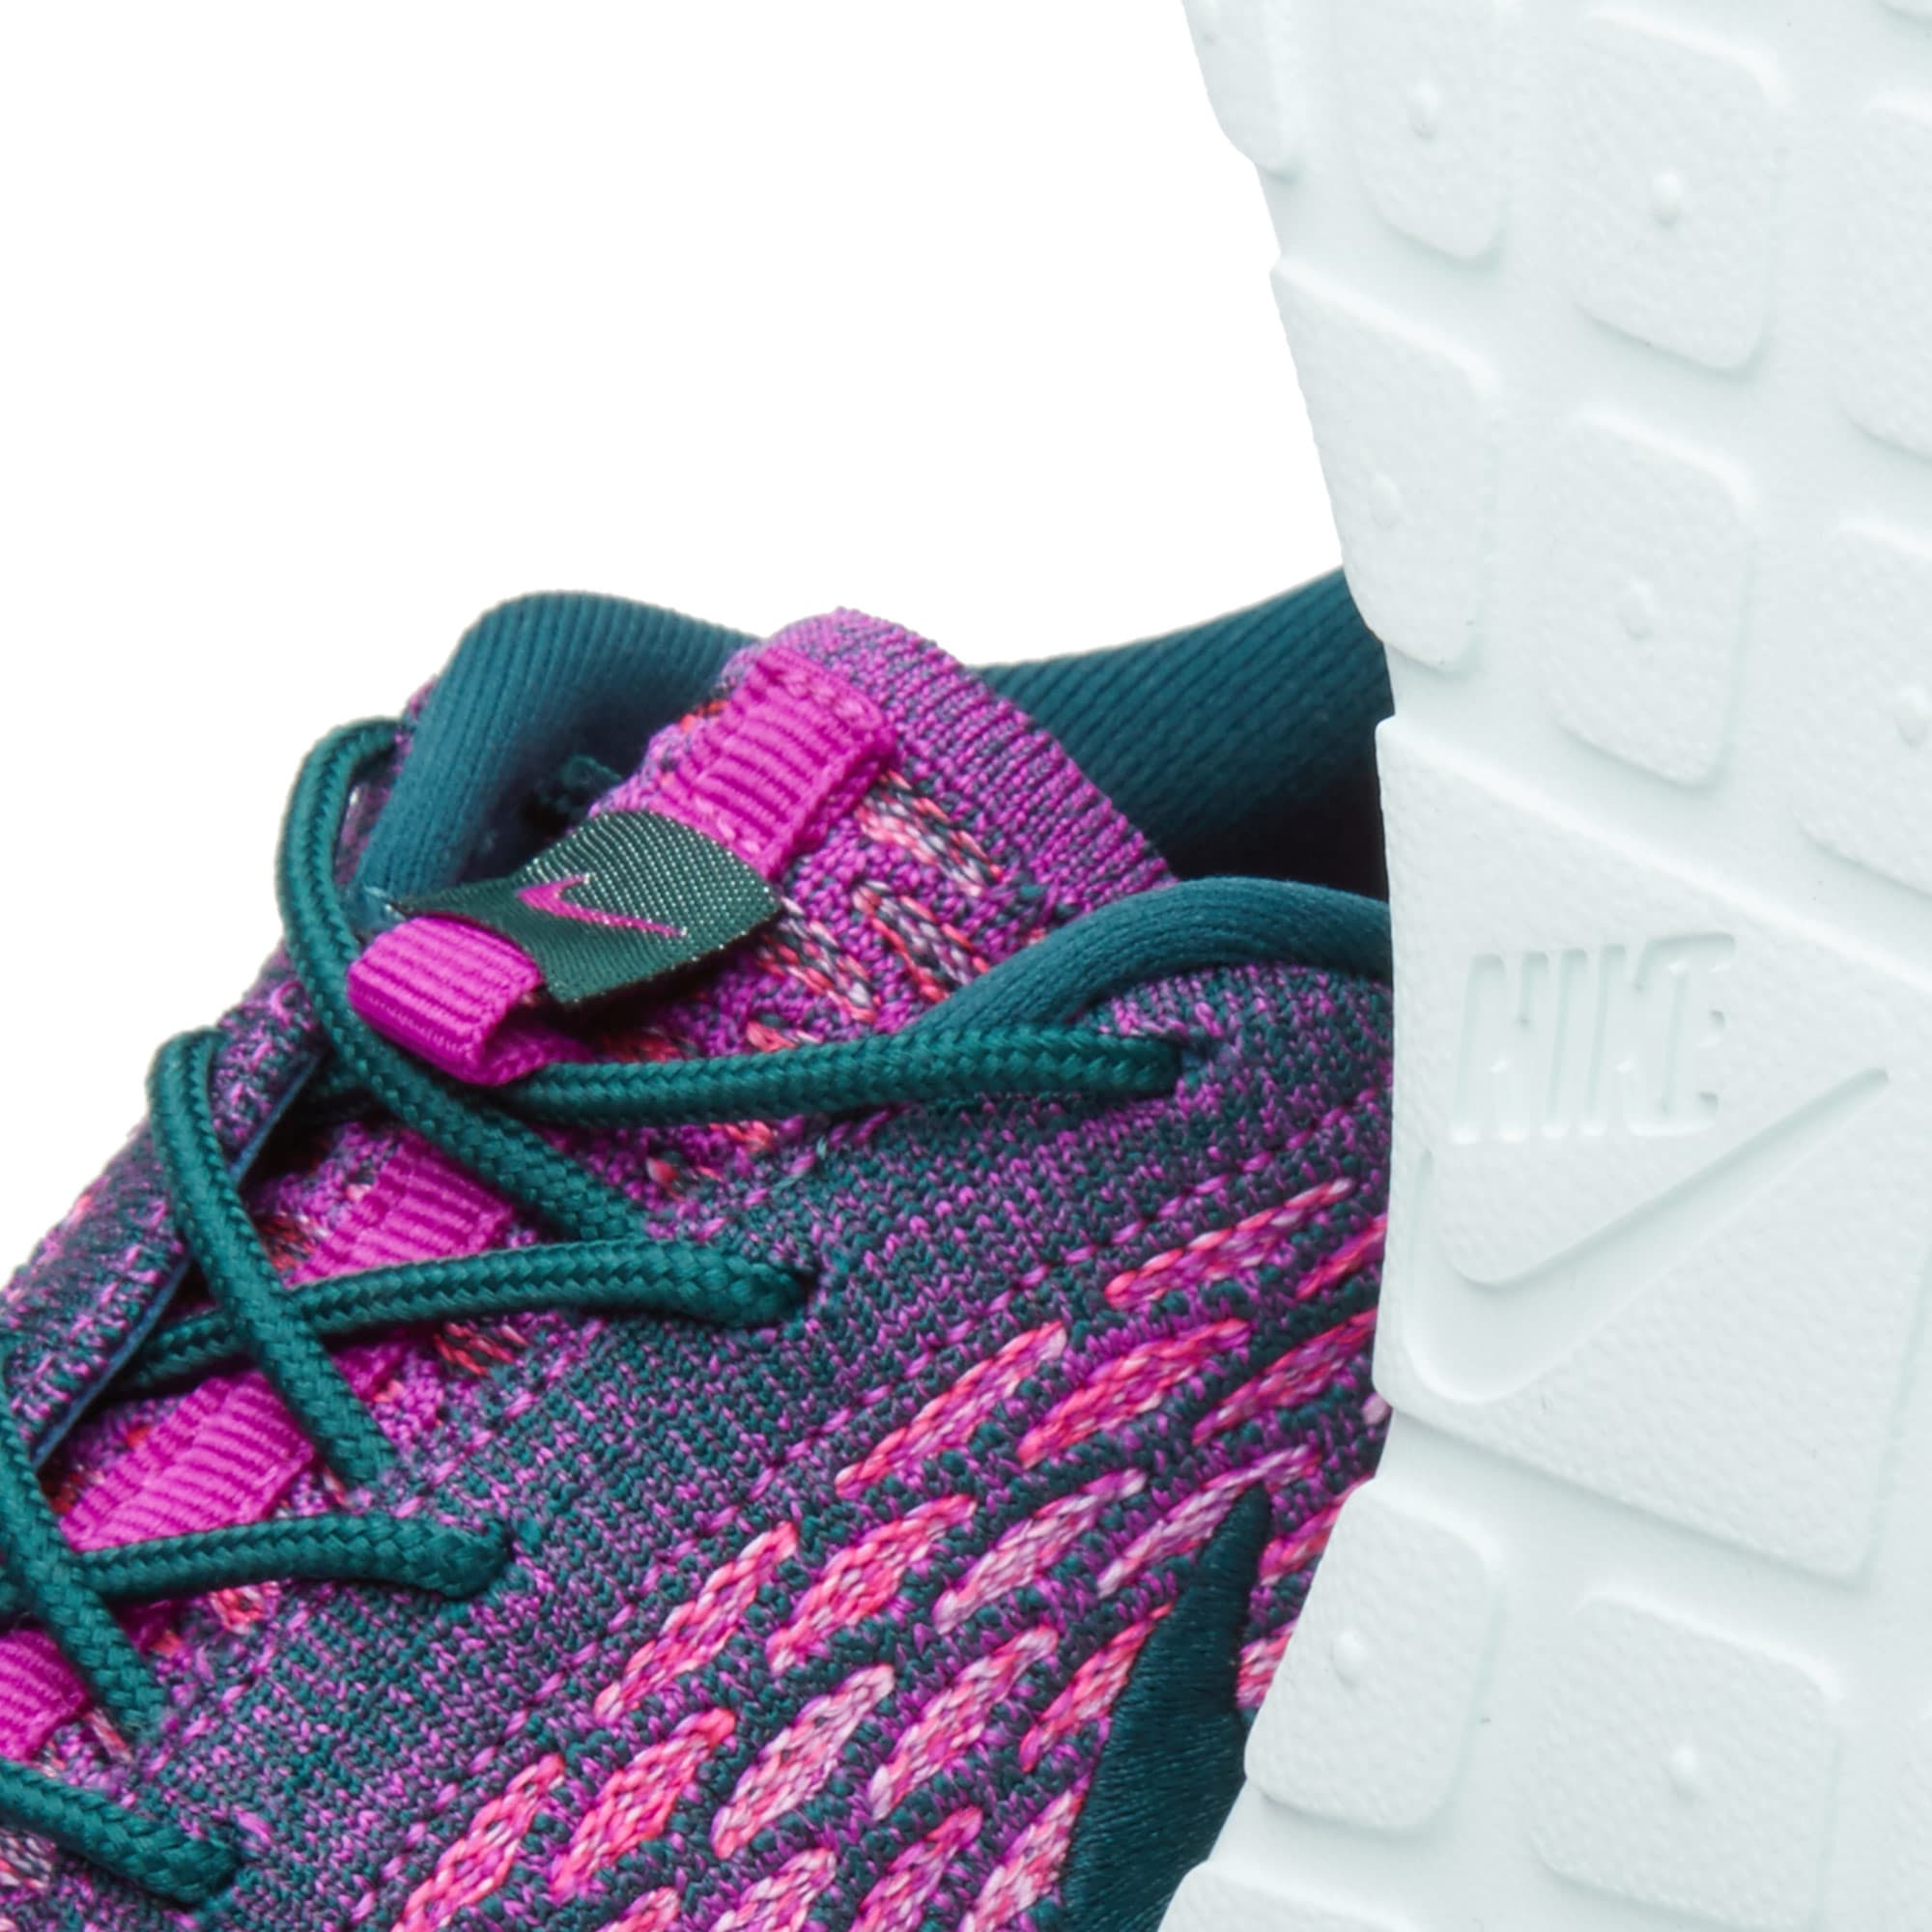 separation shoes ee667 1a4b1 Nike W Roshe One Flyknit